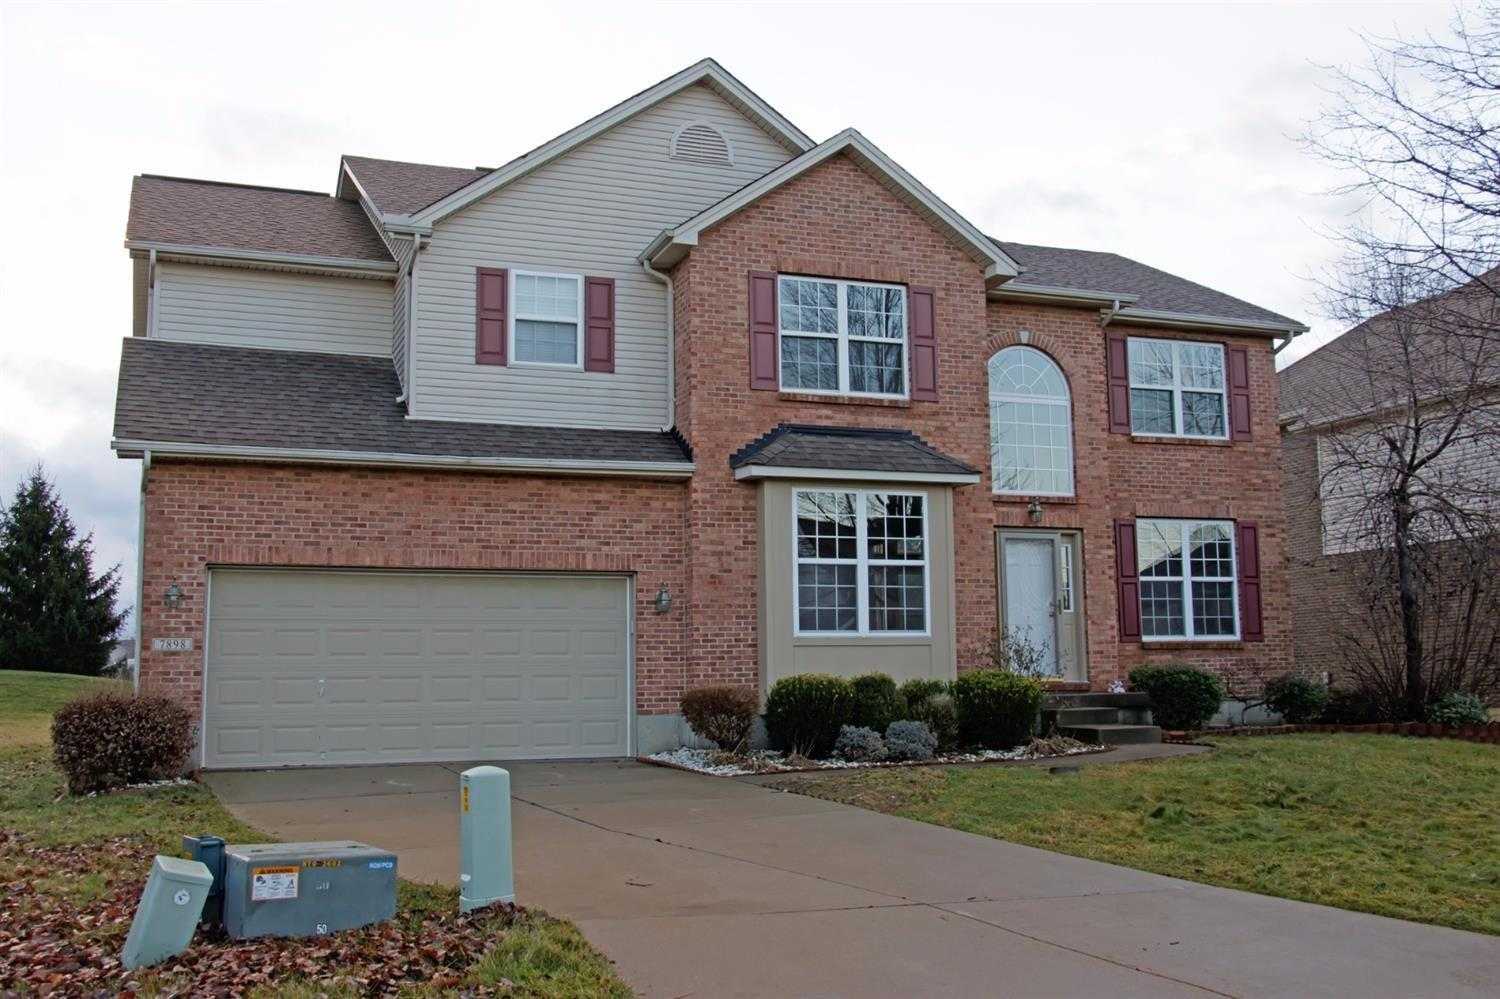 7898 Threshing Ct West Chester - West, OH